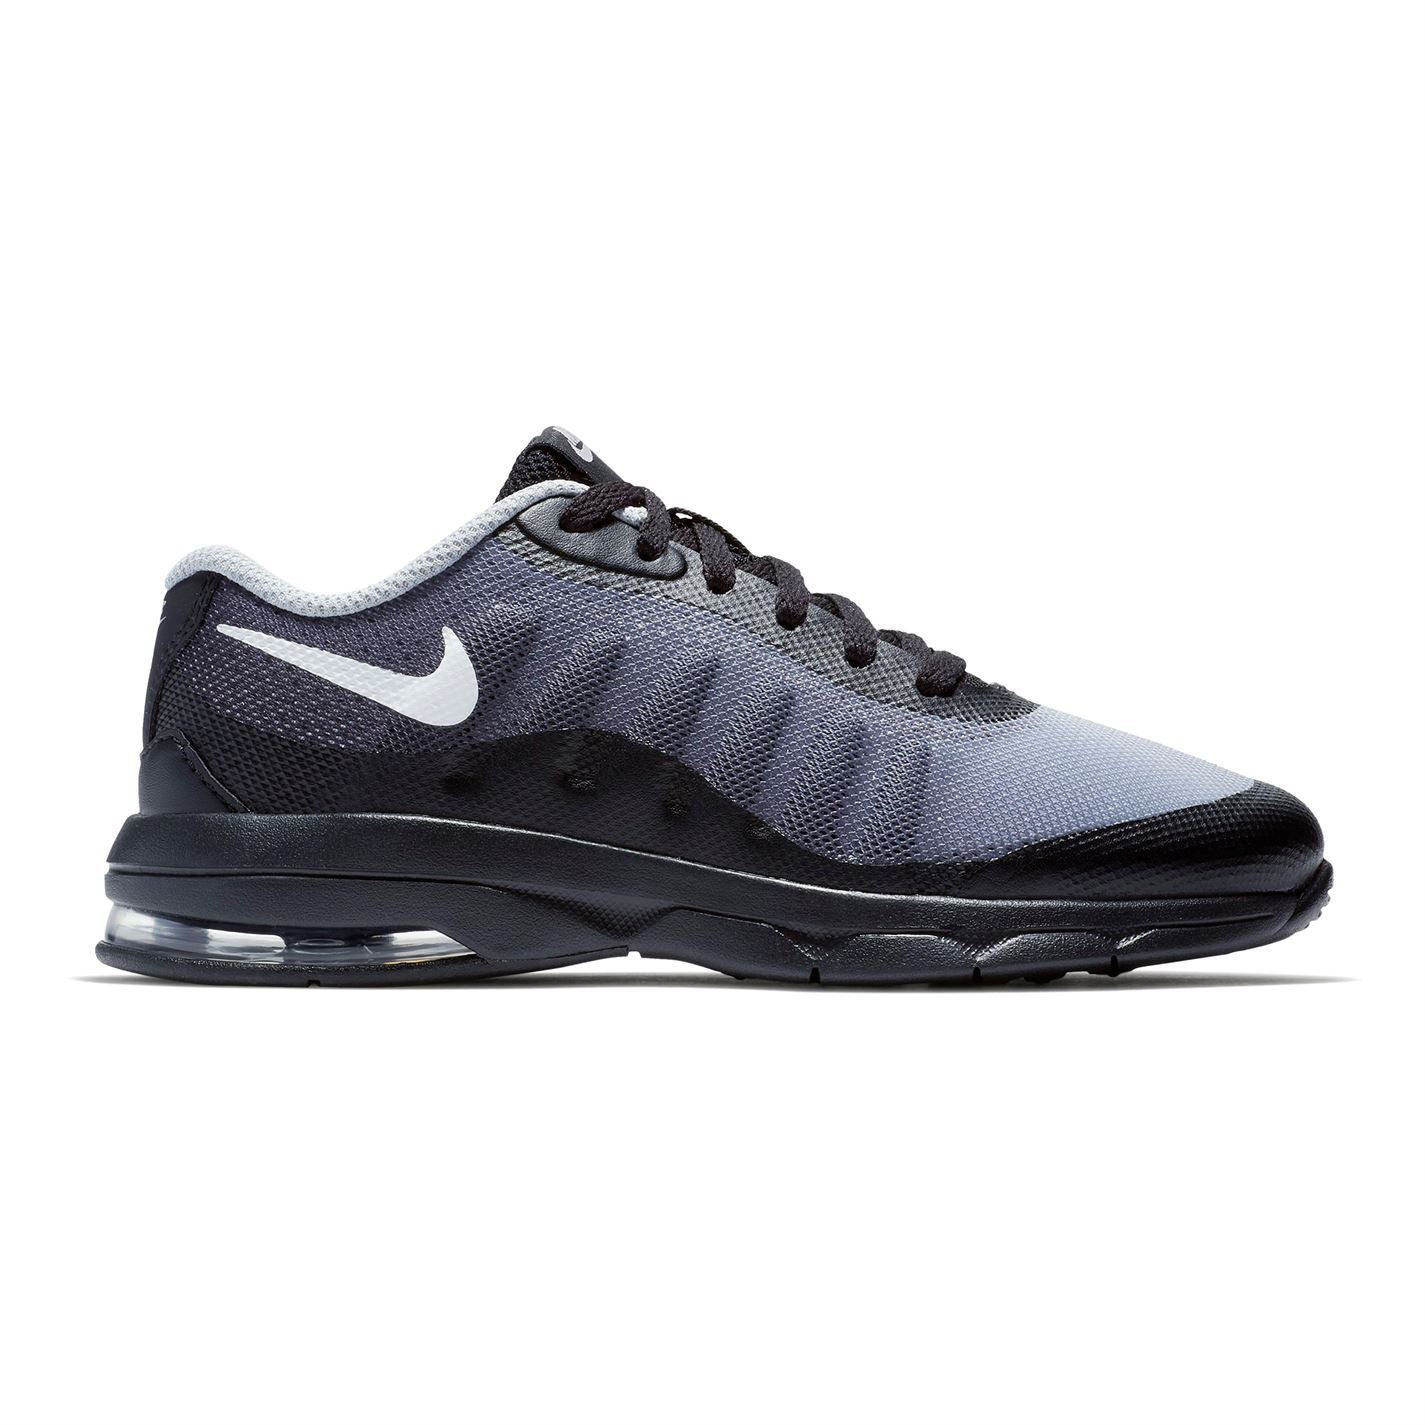 1a36c0062f Details about Nike Air Max Invigor Print Boys Trainers Black/White/Gry Shoes  Footwear